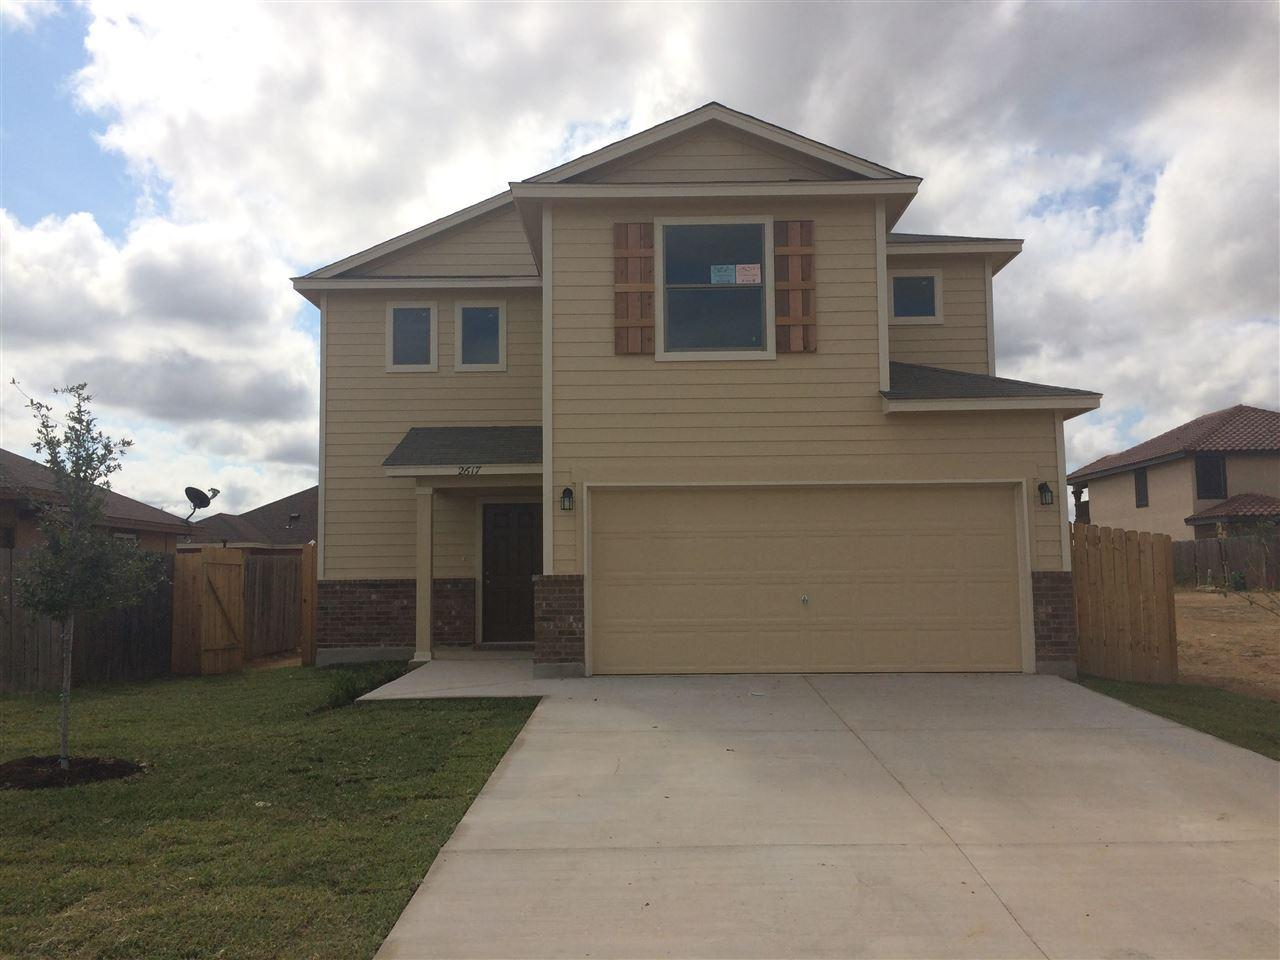 Listing 2617 jean st laredo tx mls 20153222 homes Home builders in laredo tx